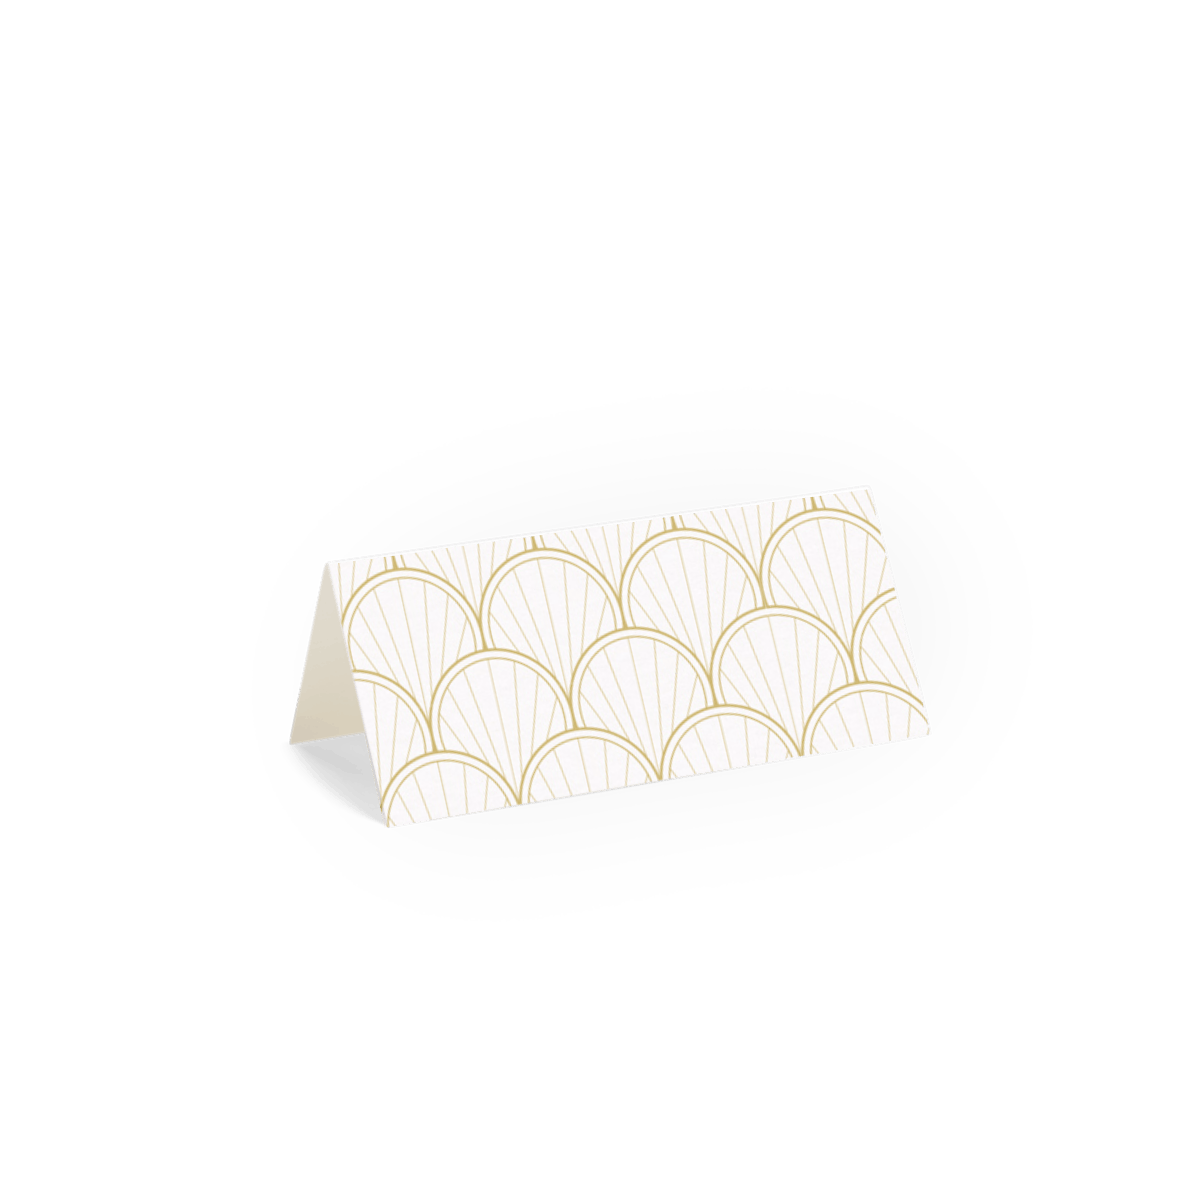 Https%3a%2f%2fwww.papier.com%2fproduct image%2f9917%2f15%2fgold scallop 2520 back 1470065465.png?ixlib=rb 1.1